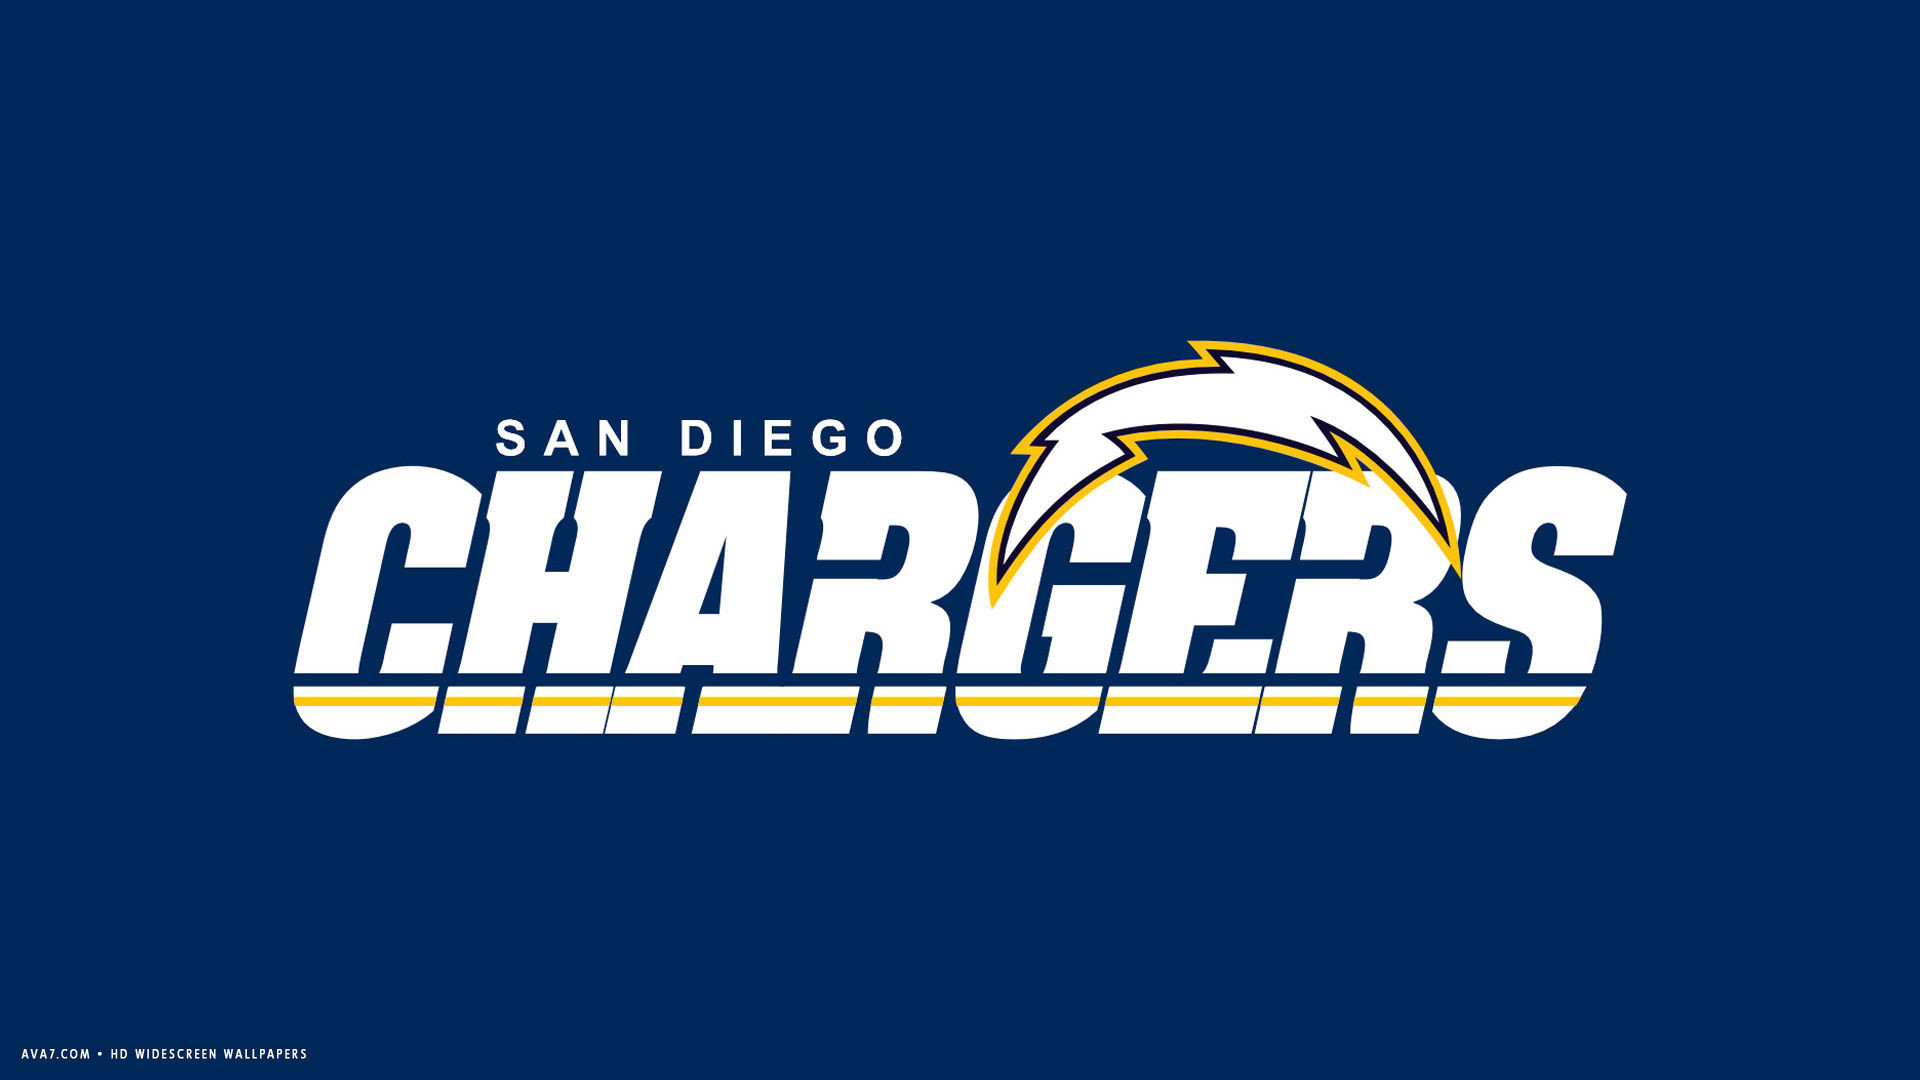 1920x1080 san diego chargers  hd widescreen wallpaper